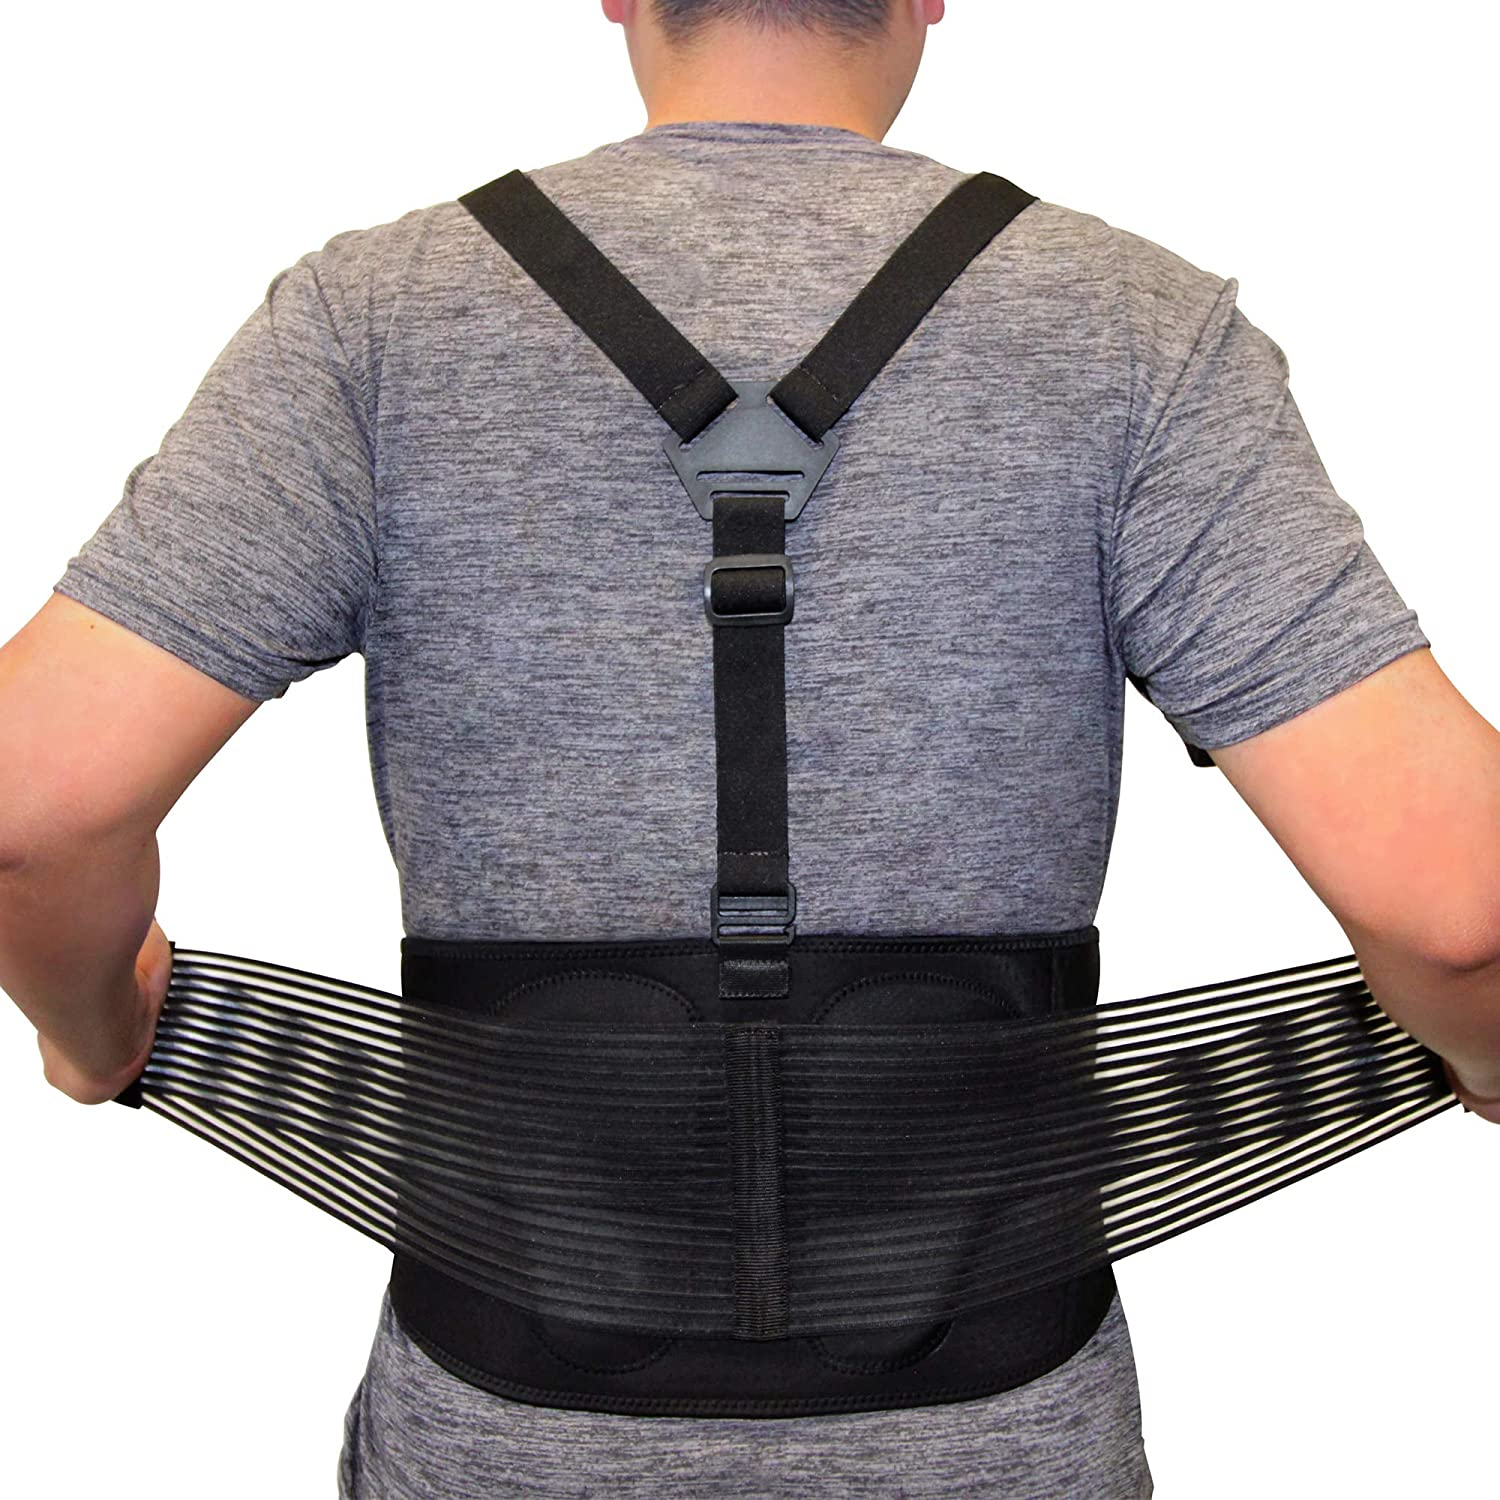 AllyFlex Lumbar Support Back Brace with Suspenders, 3-Way Adjustable Safety Belt with Dual Lumbar Pads for Lower Back Support and Injury Prevention, Medium